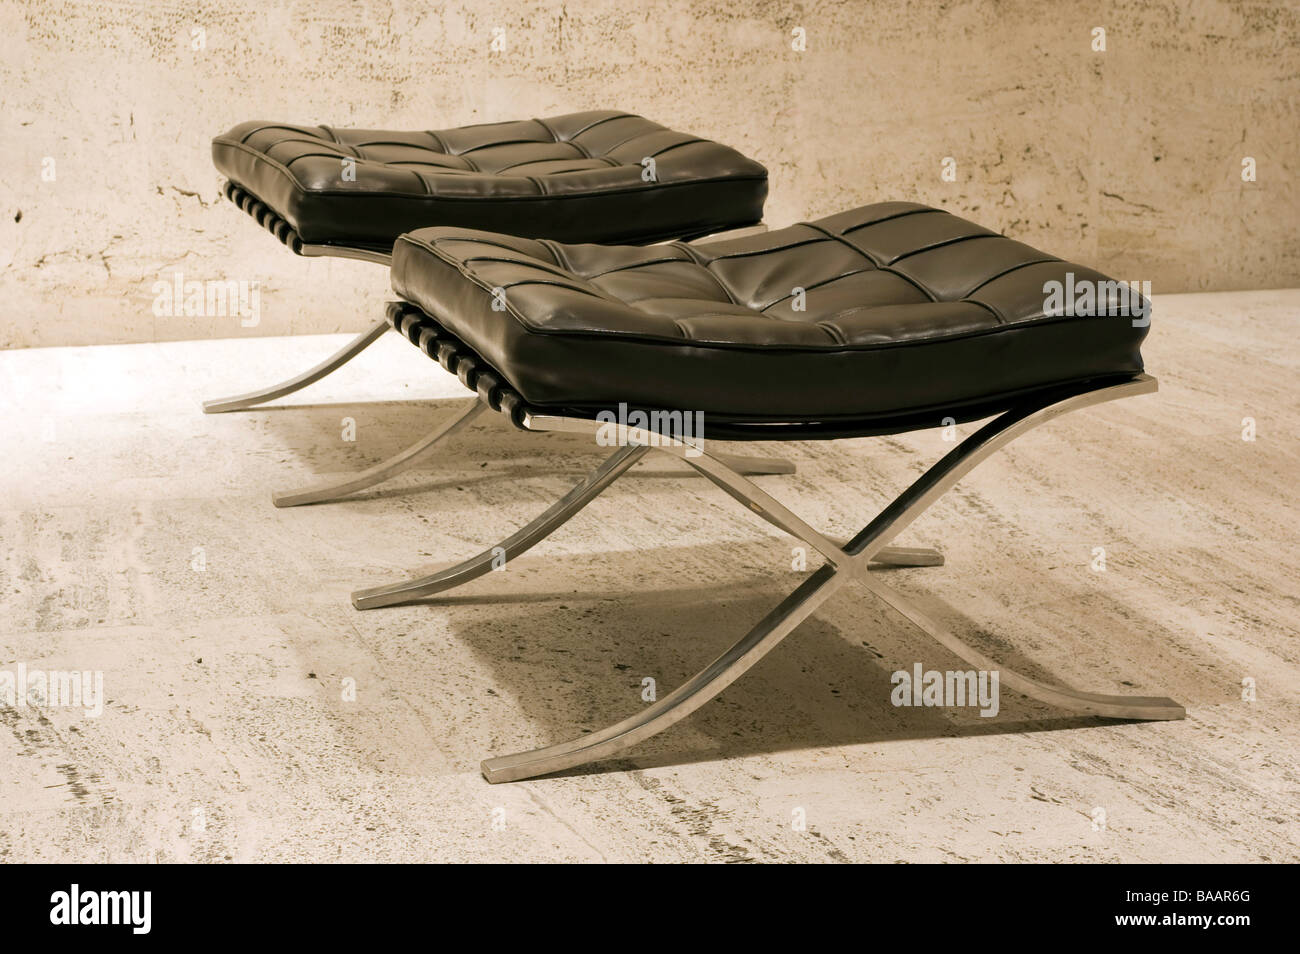 Two Barcelona Ottomans, designed by Ludwig Mies Van Der Rohe and Lilly Reich (For Editorial Use Only) - Stock Image